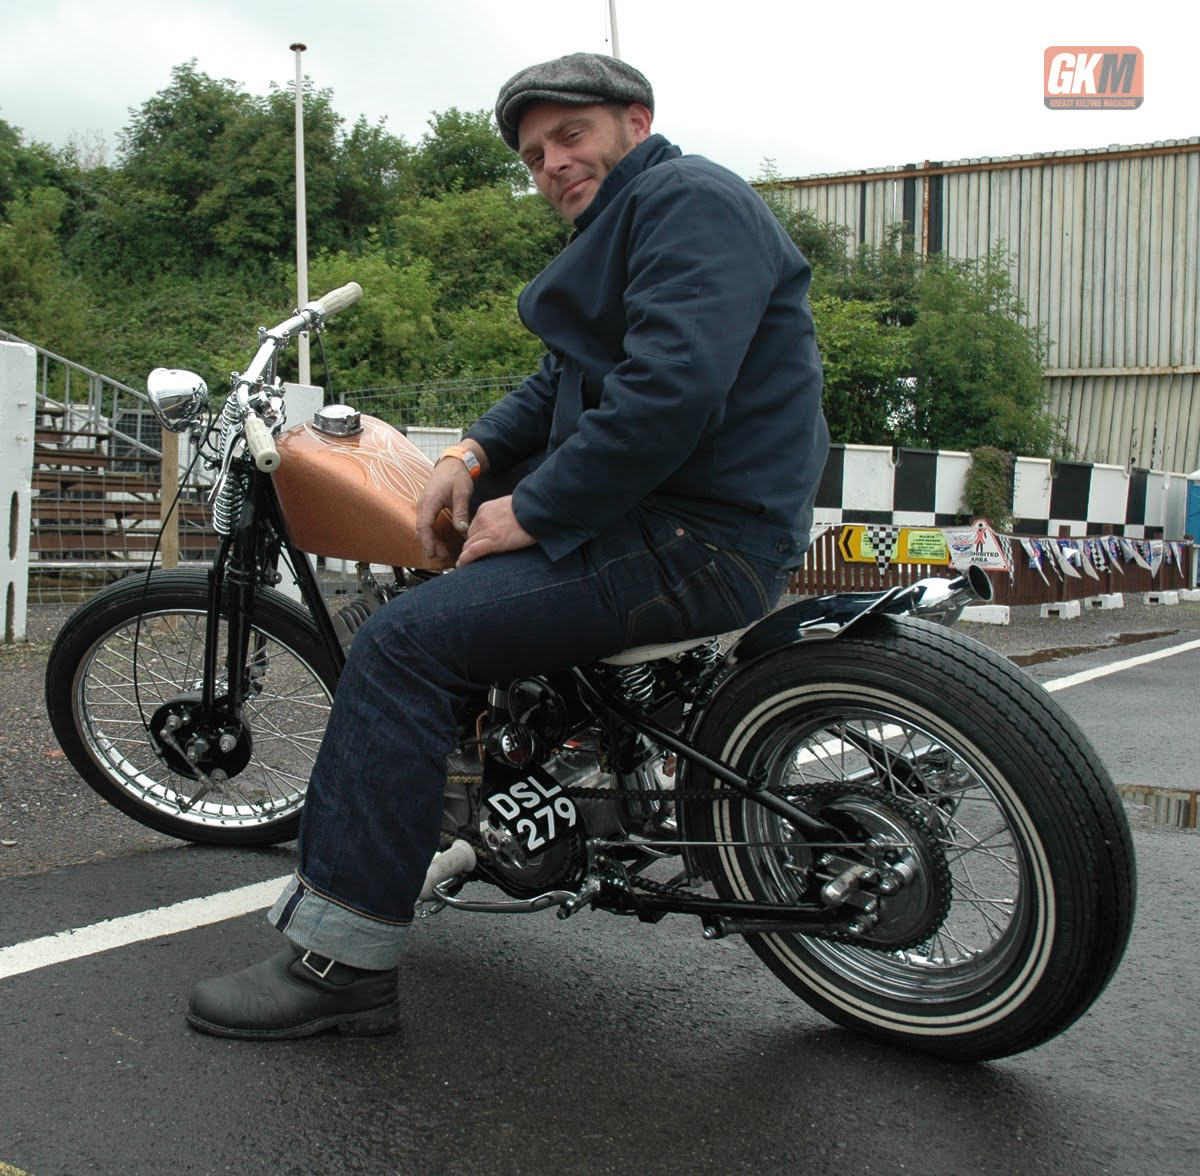 b335ed790fea4 By now you may have heard the very sad news that Johnny Routledge died on  Wednesday 5 January. You may have known him as  Slowrider  on the Jockey  Journal ...